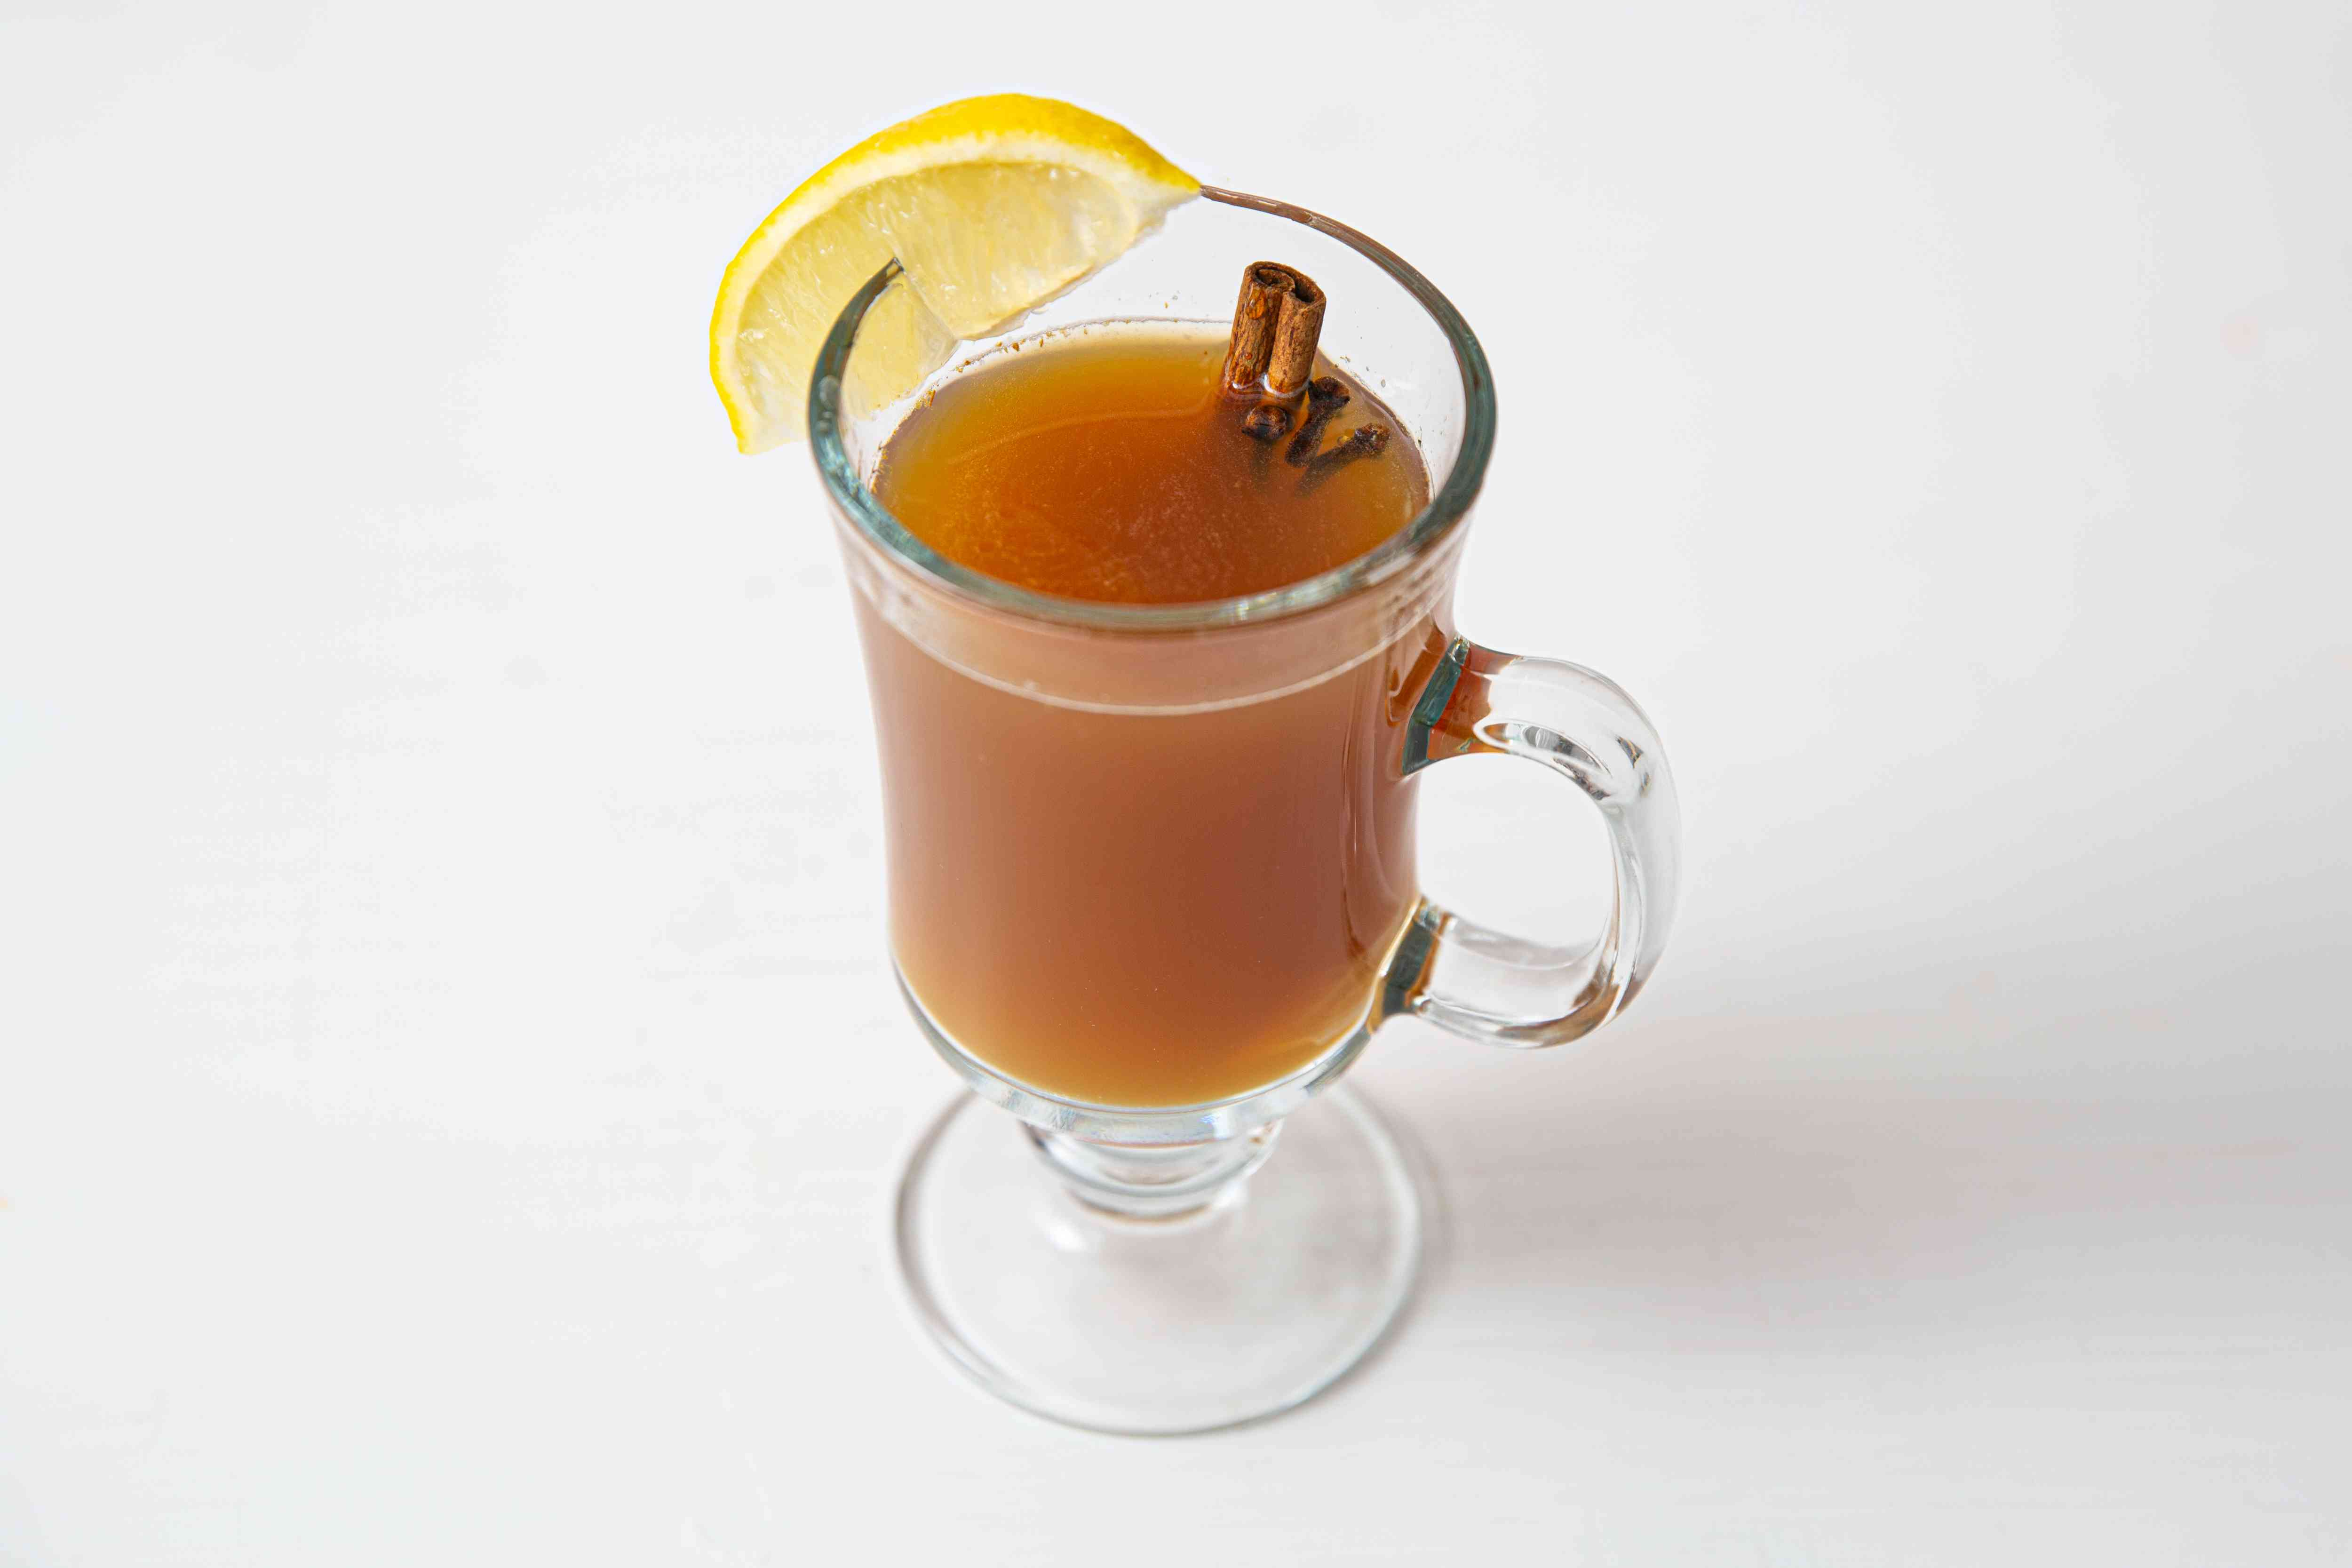 Hot apple toddy garnished with lemon and a cinnamon stick